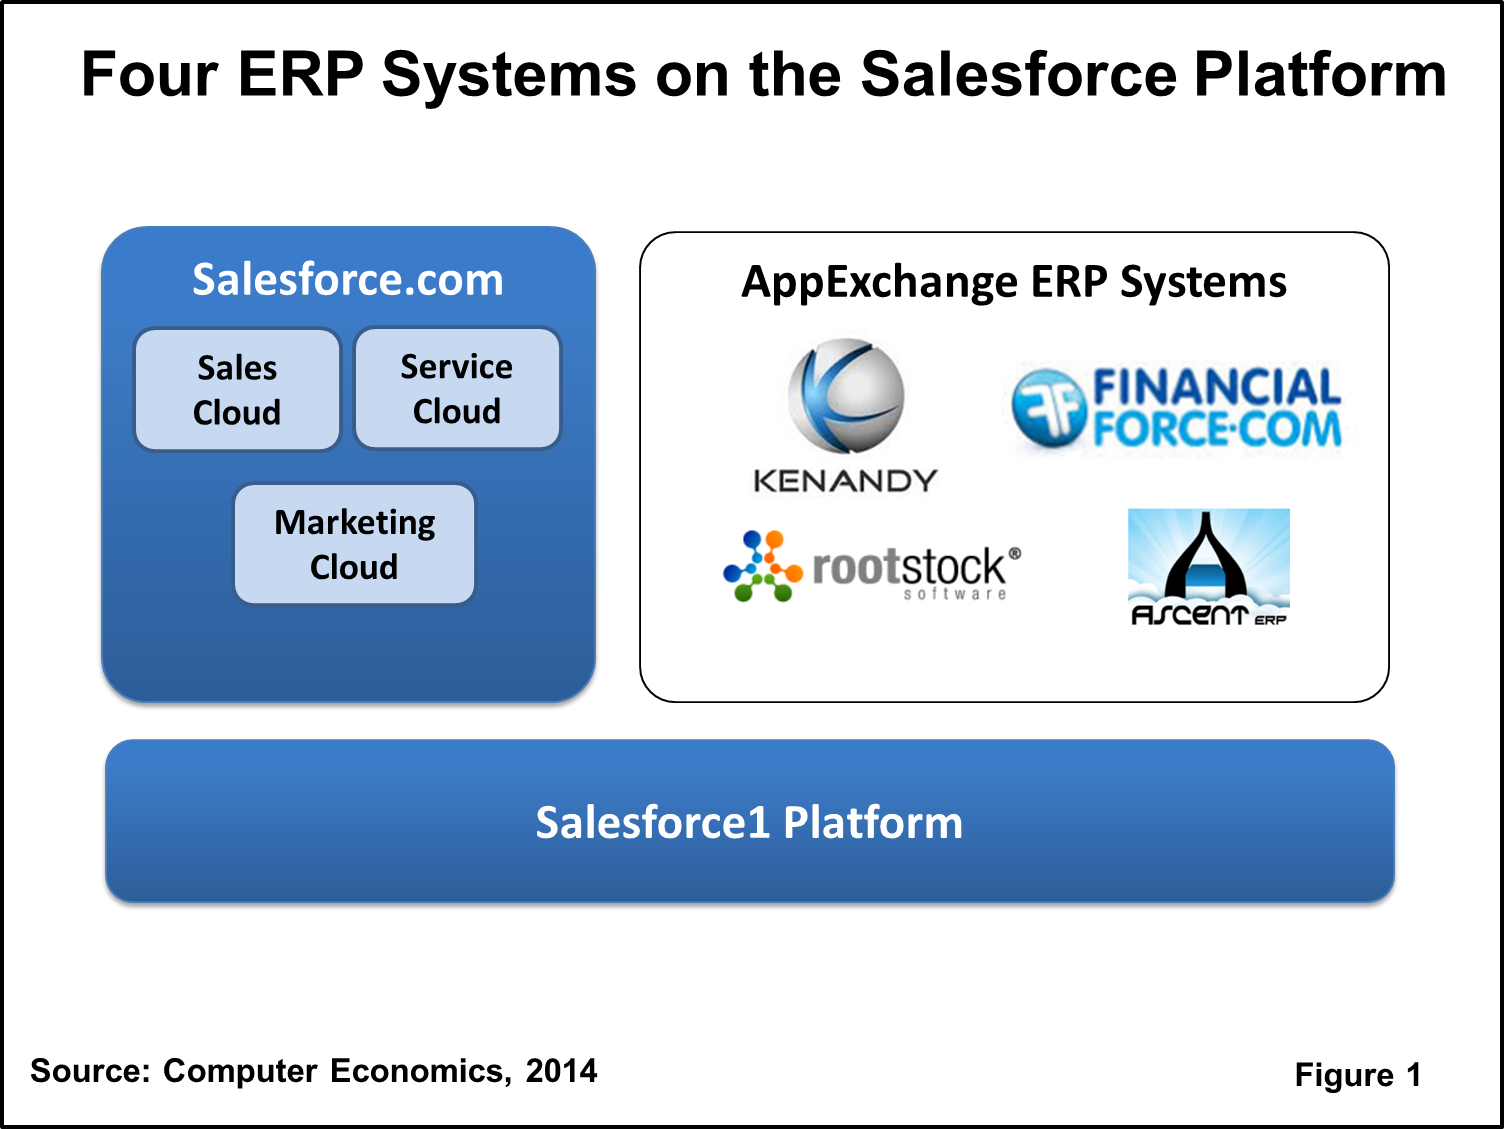 Salesforce: The Enterprise System Spectator: The Maturing Of ERP On